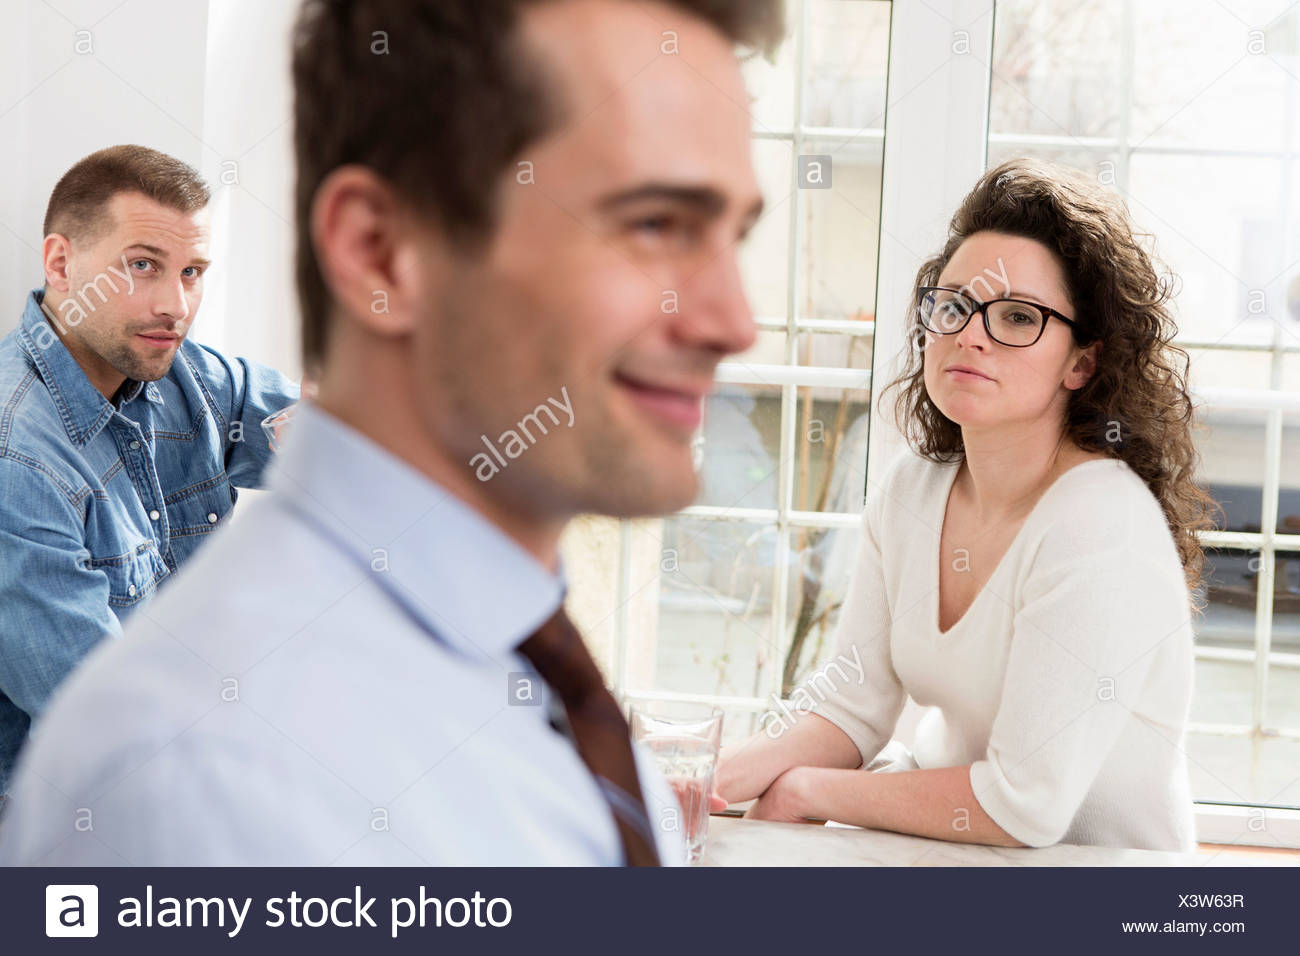 Mature man smiling, mid adults in background - Stock Image